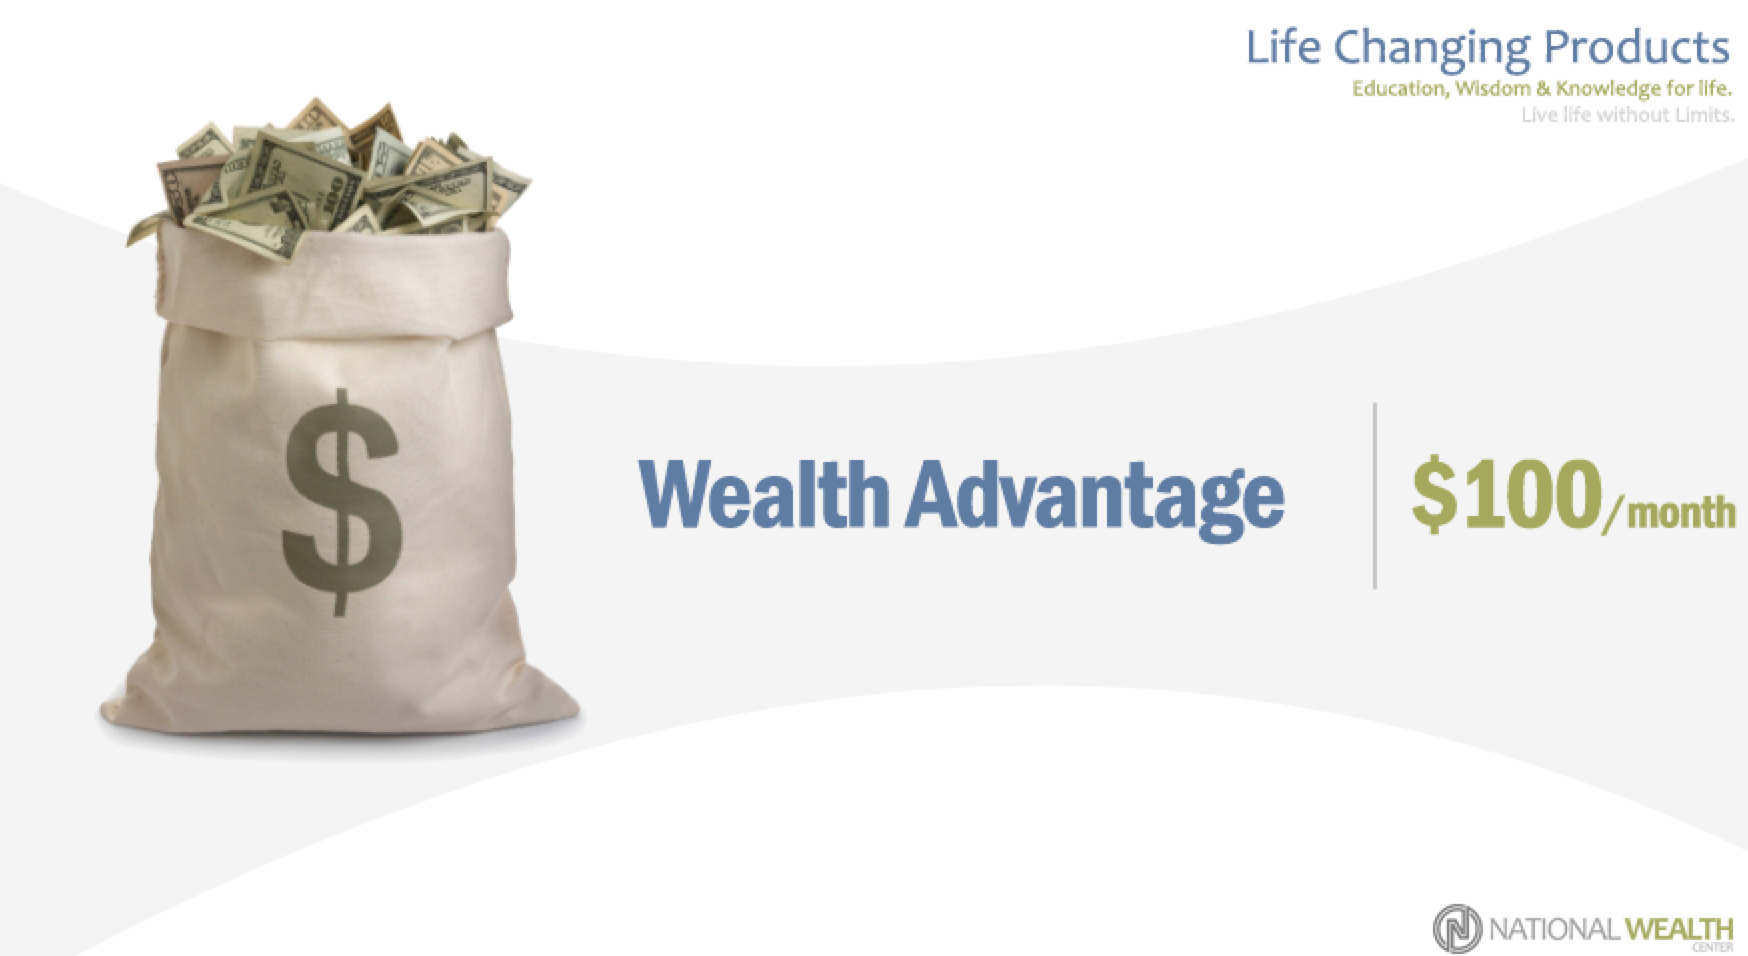 The $100 wealth product level consist of informational products focused on Finance, Increasing Assets, and Growing Wealth: